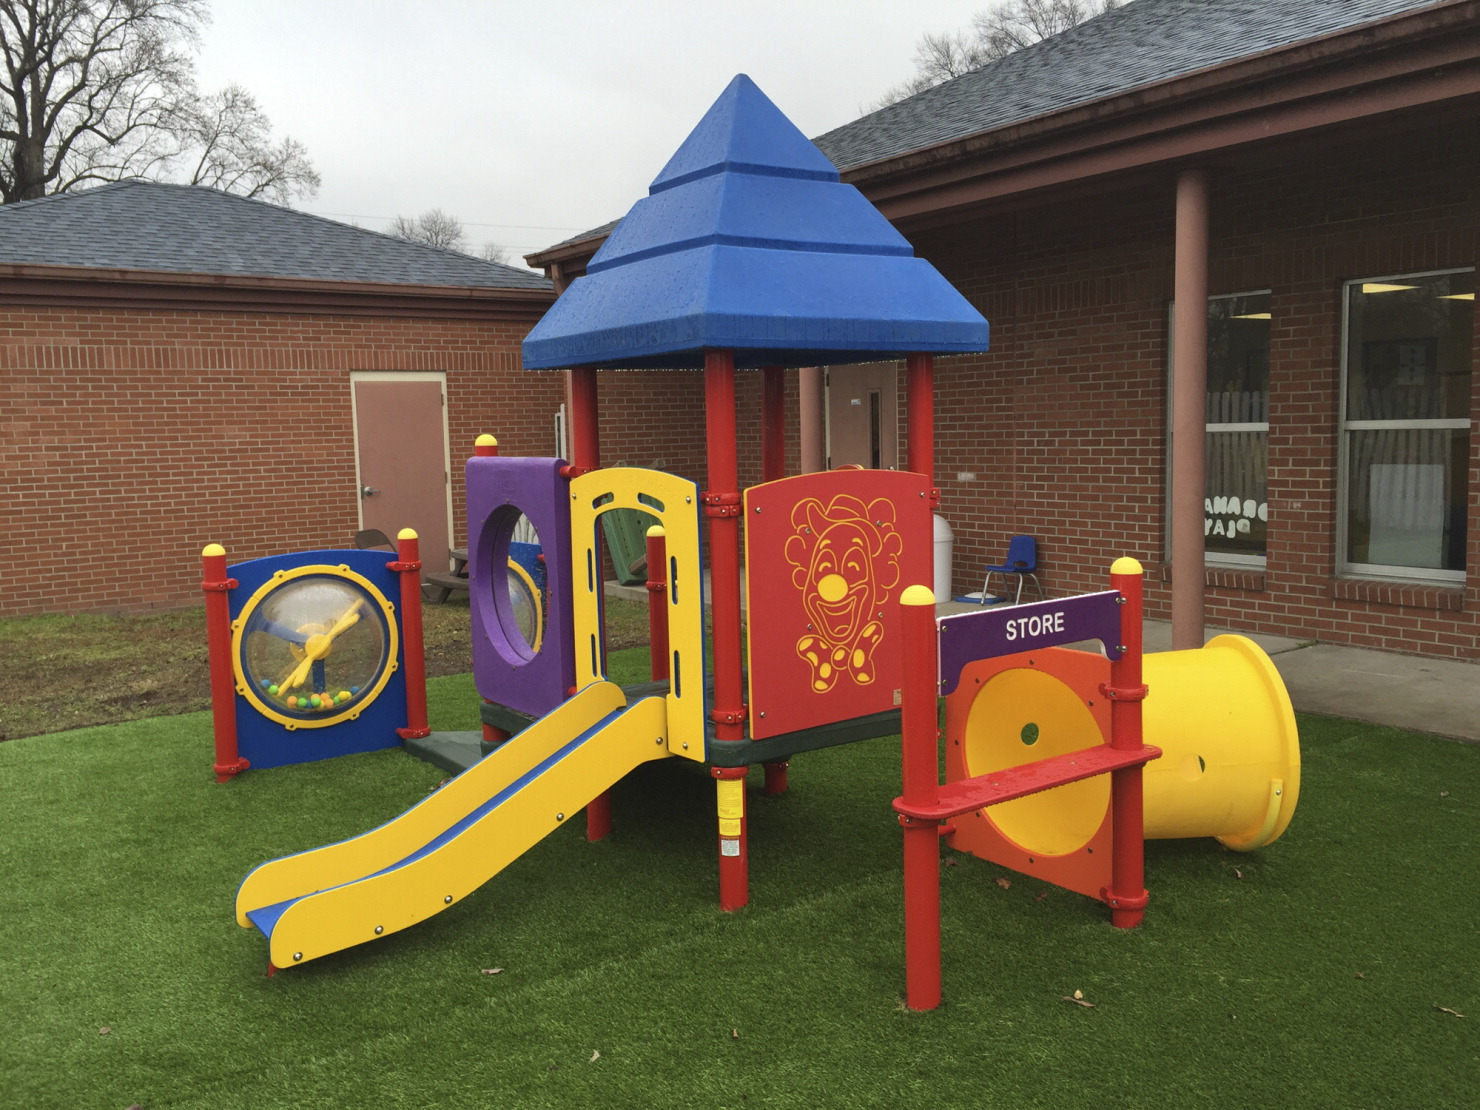 Kidstuff Playsystems Toddler Playground 7 Activities Various Options School Specialty Marketplace